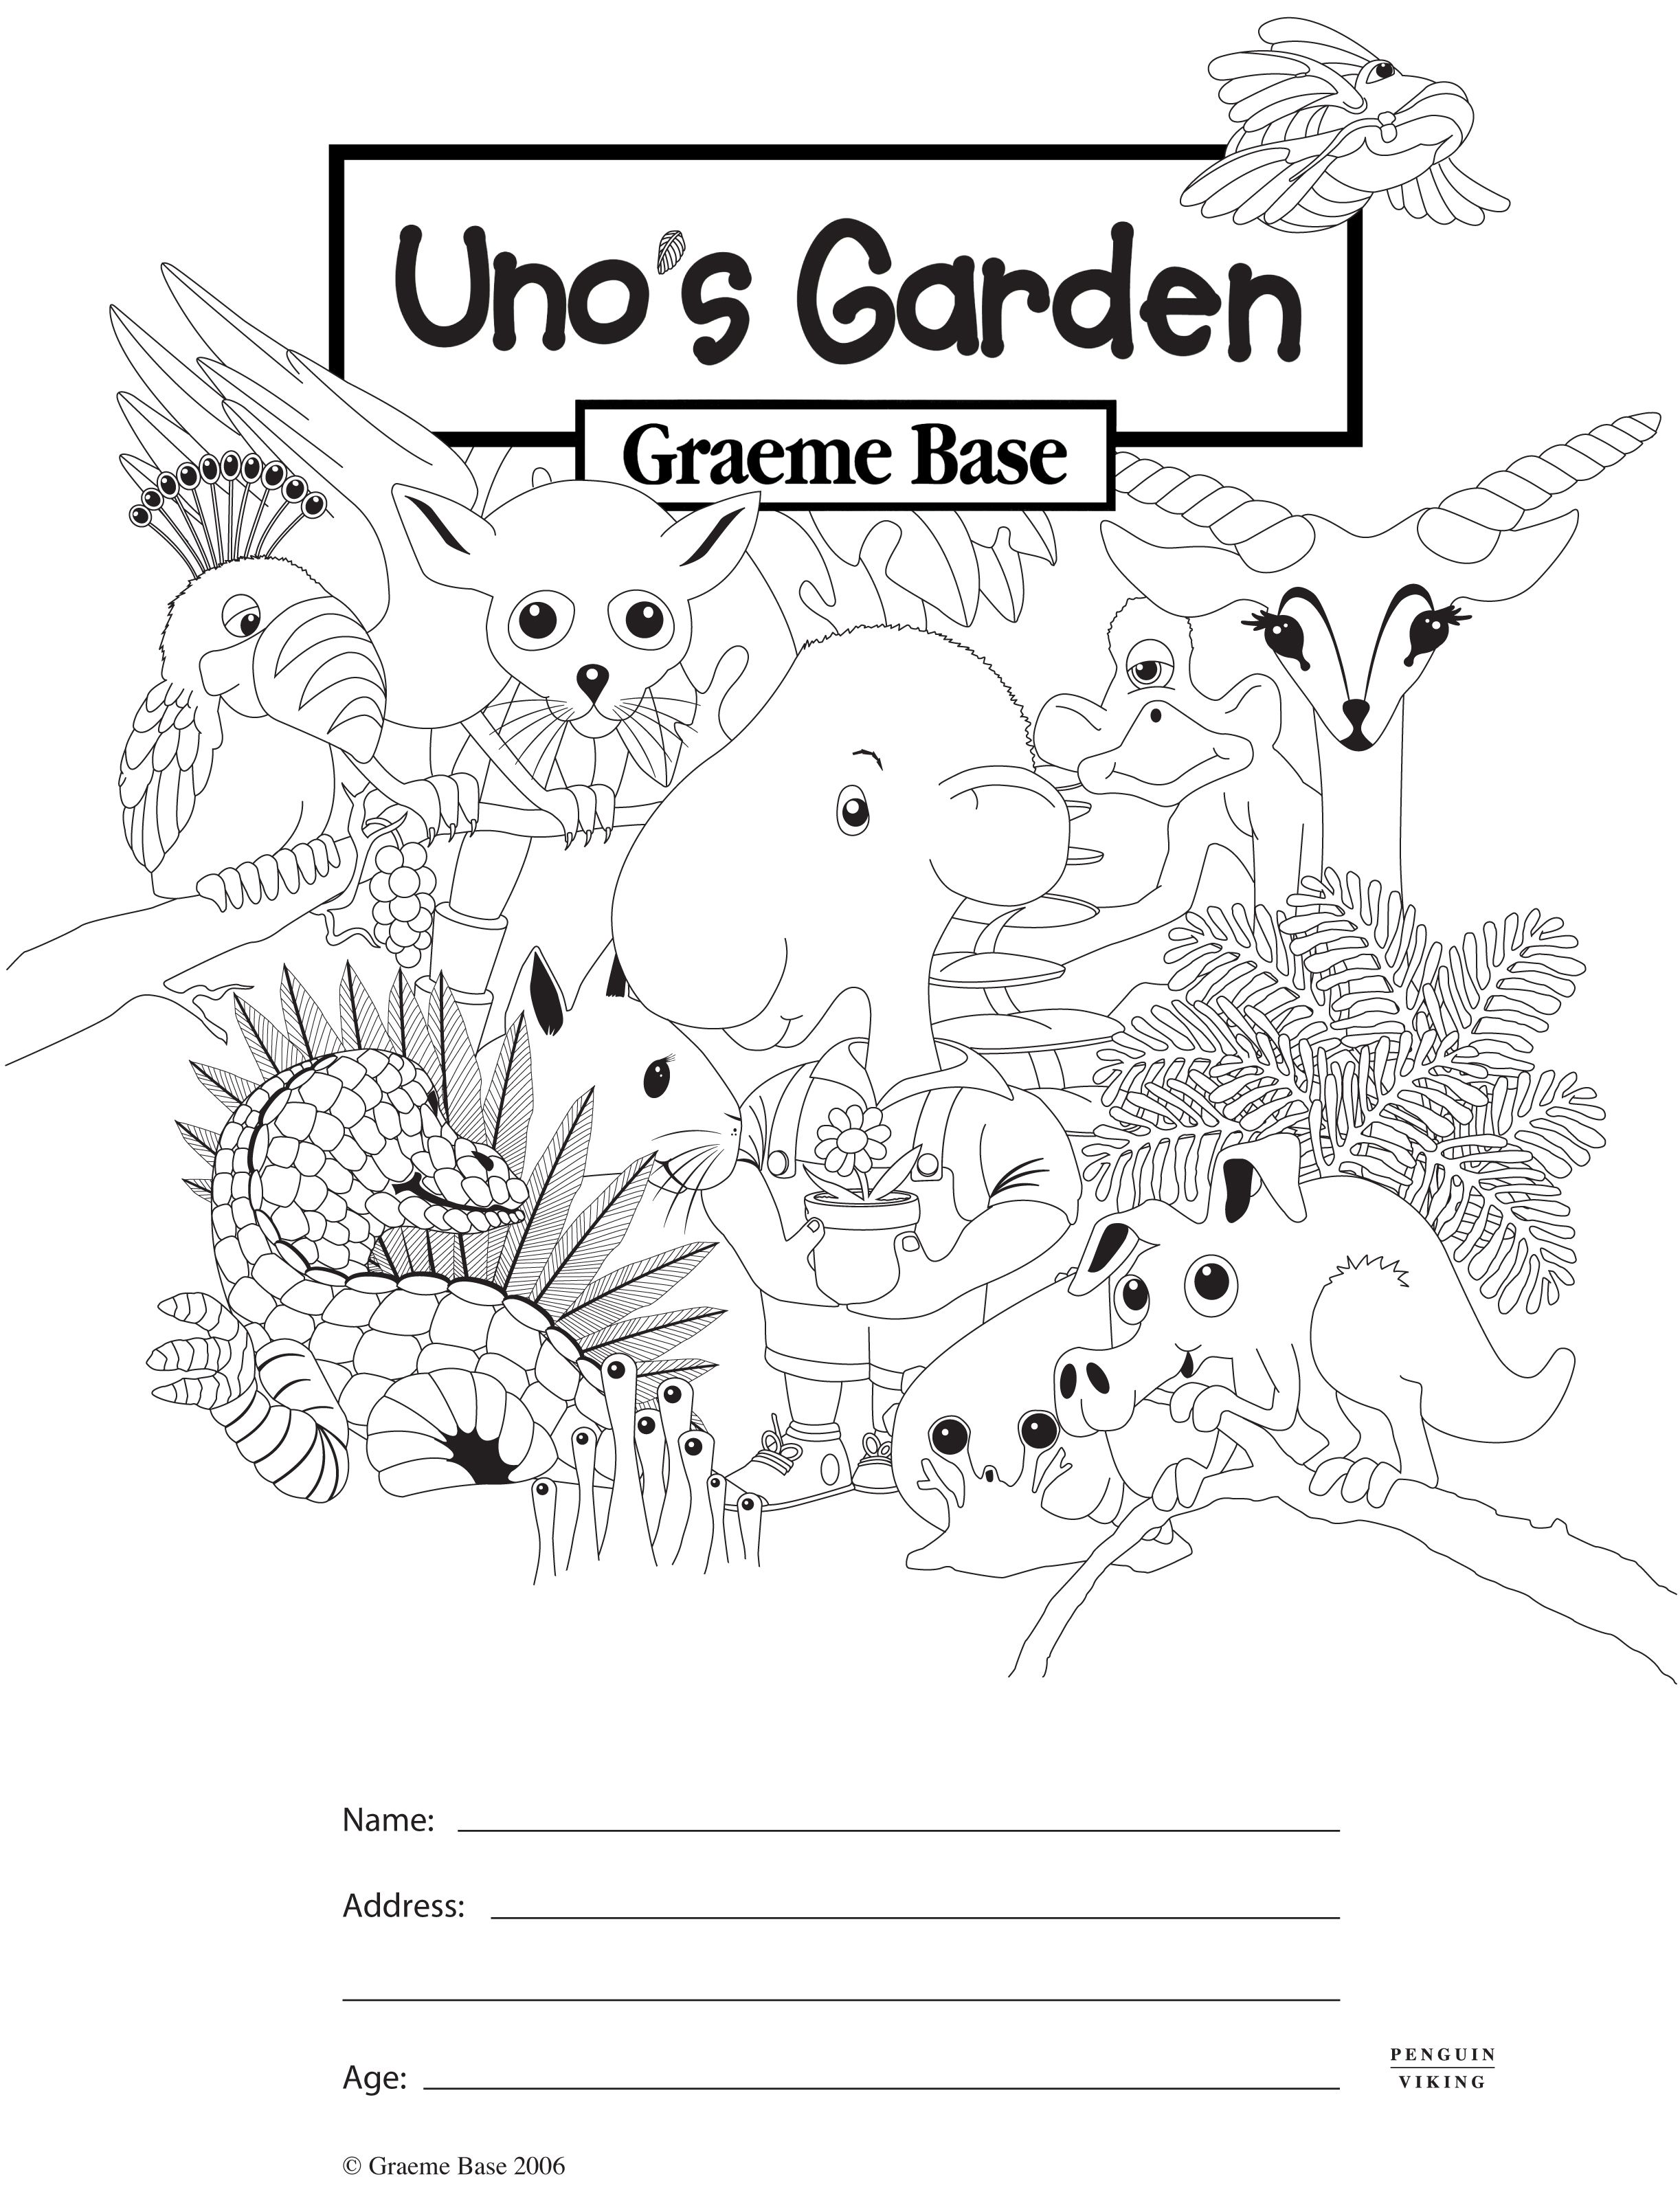 Uno S Garden Colouring In Puffin Files